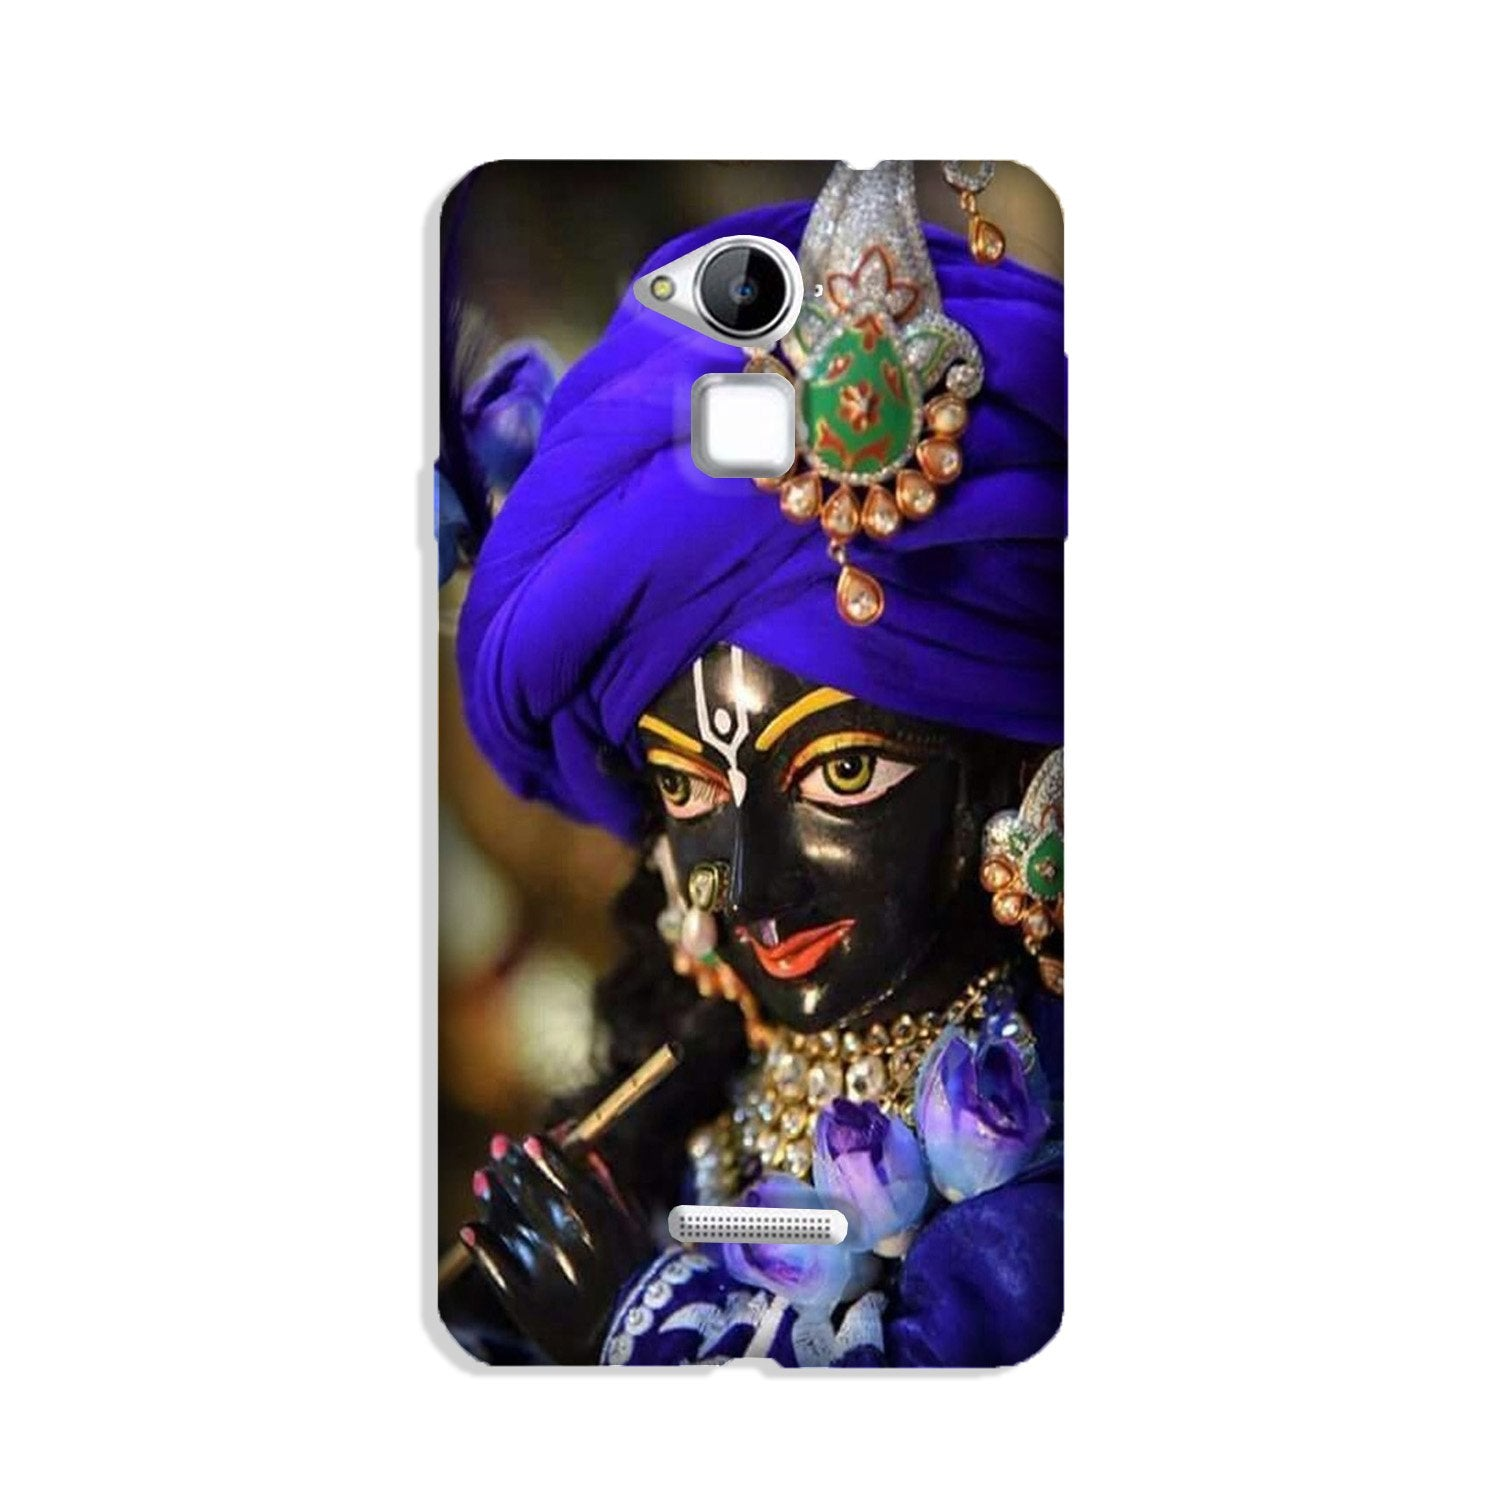 Lord Krishna4 Case for Coolpad Note 3